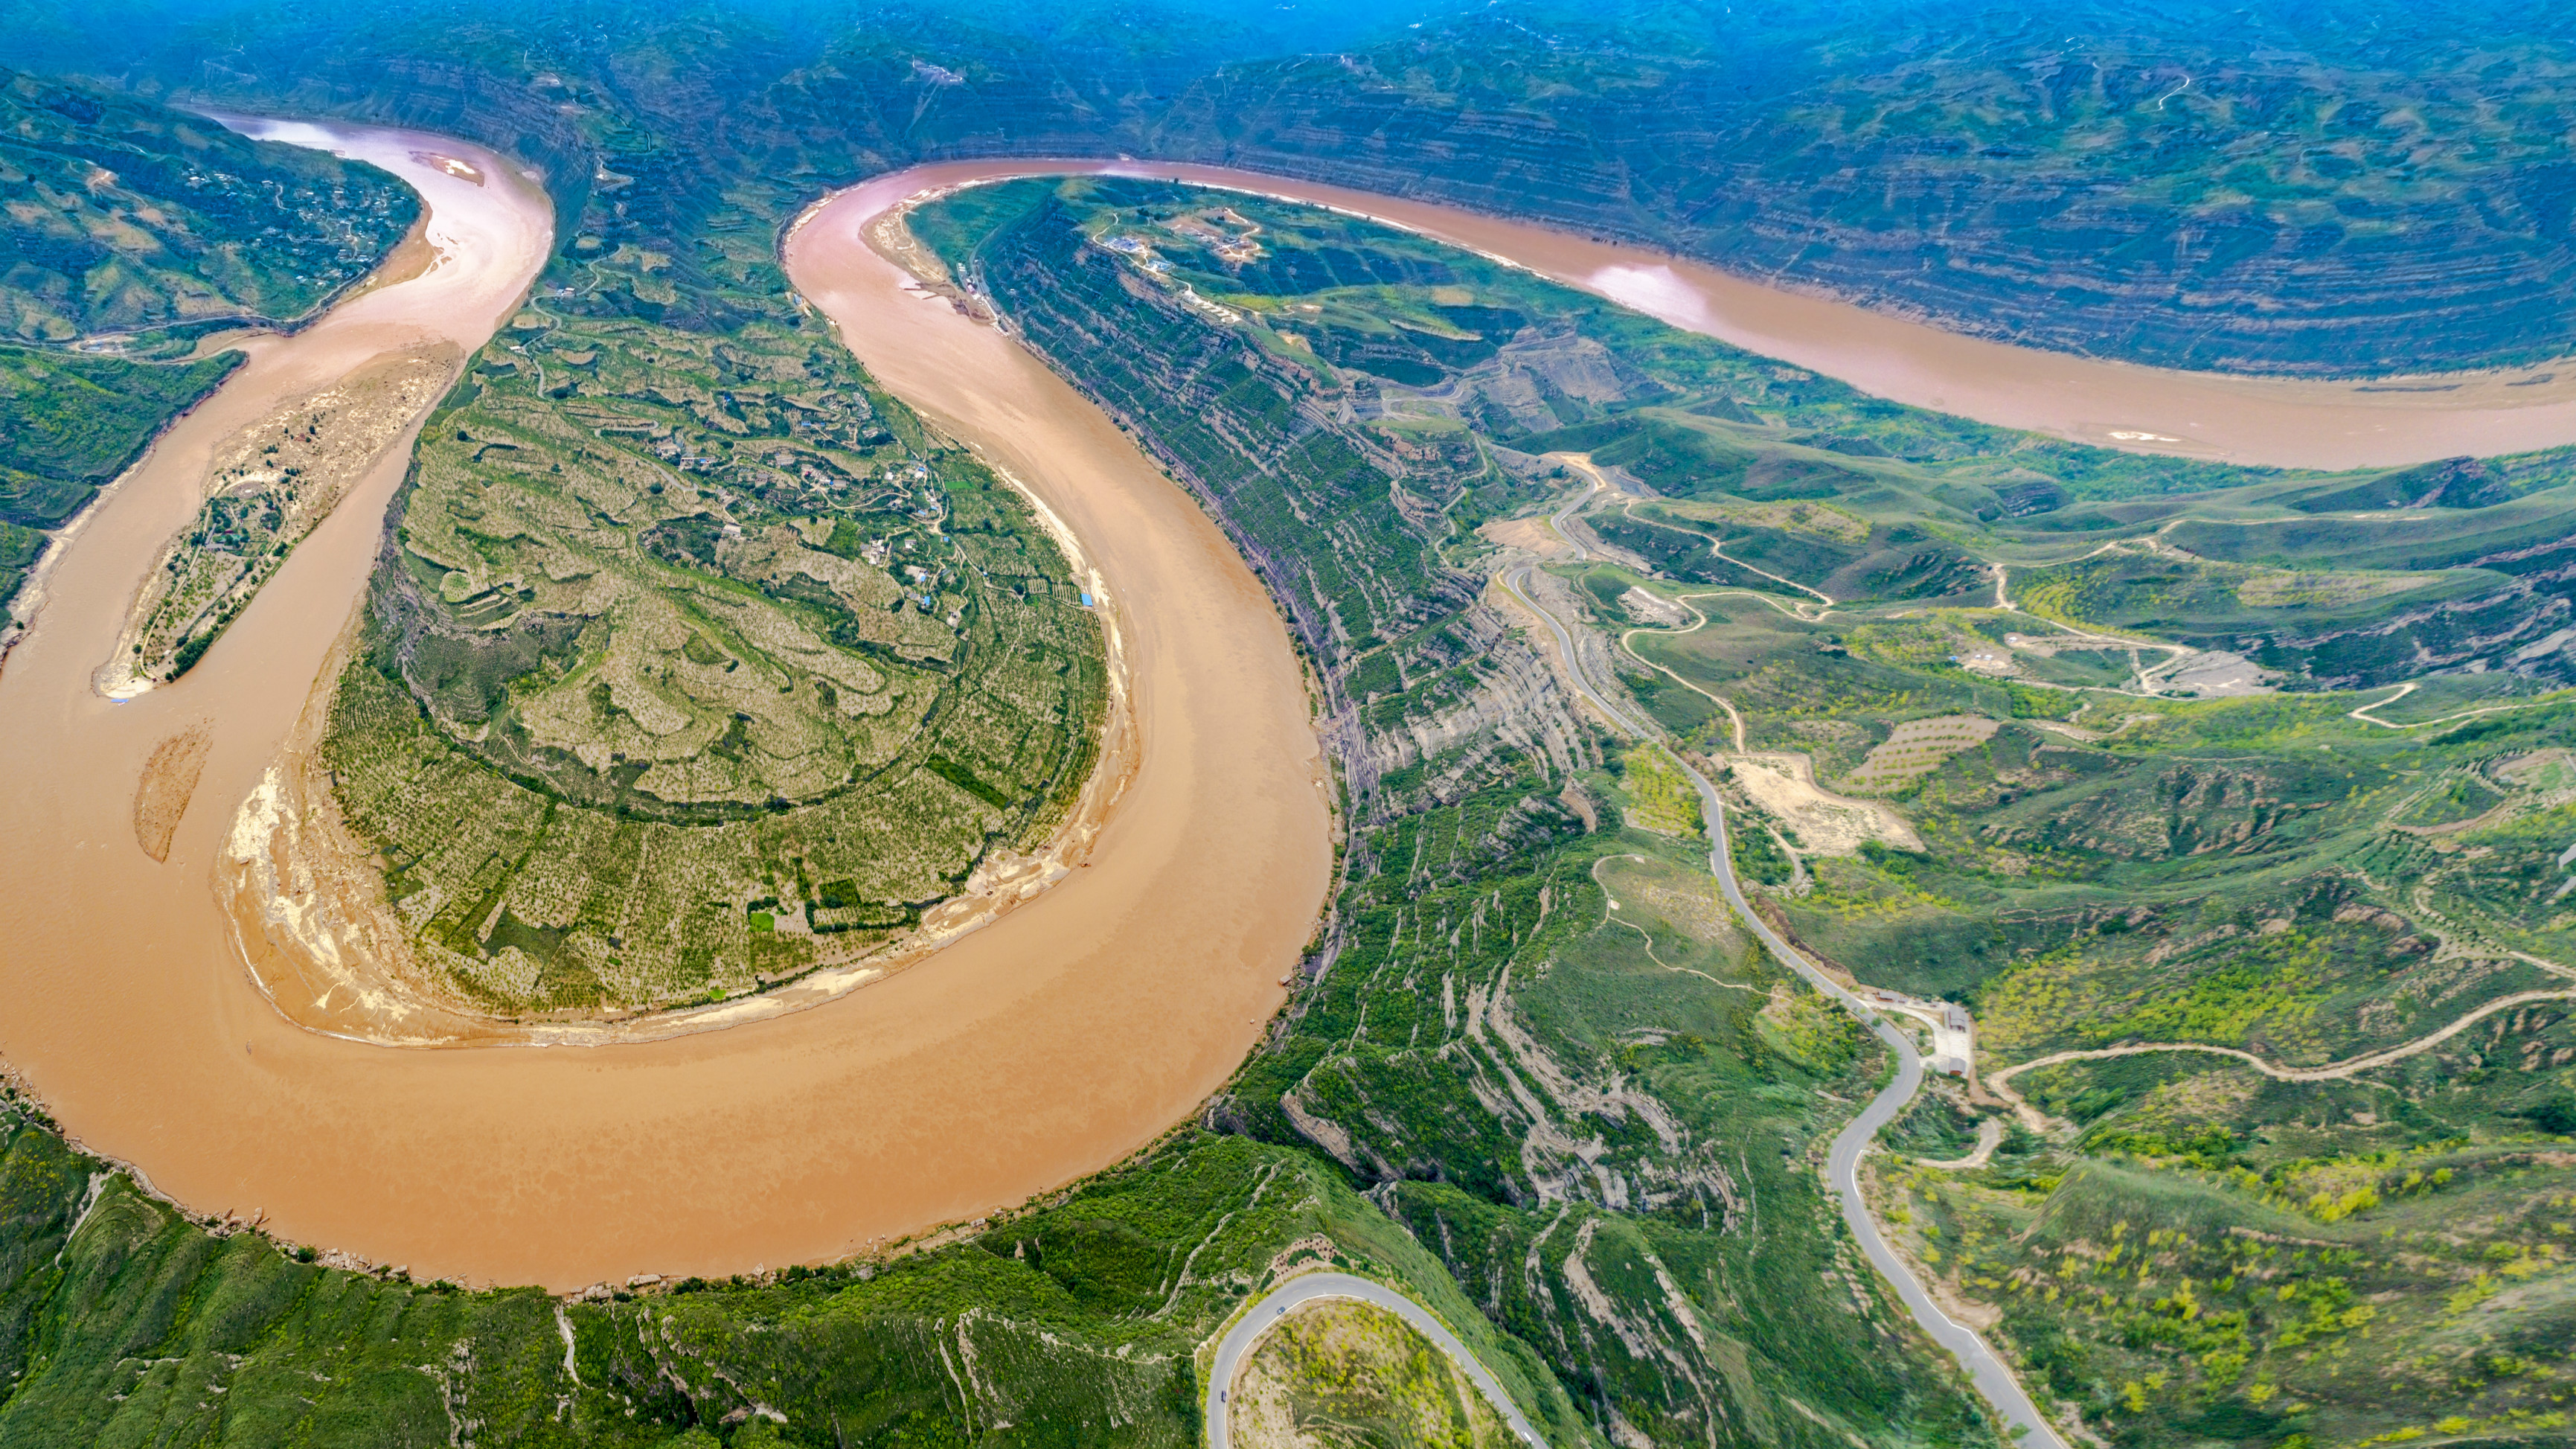 Xi expresses concern over China's Yellow River once again - CGTN